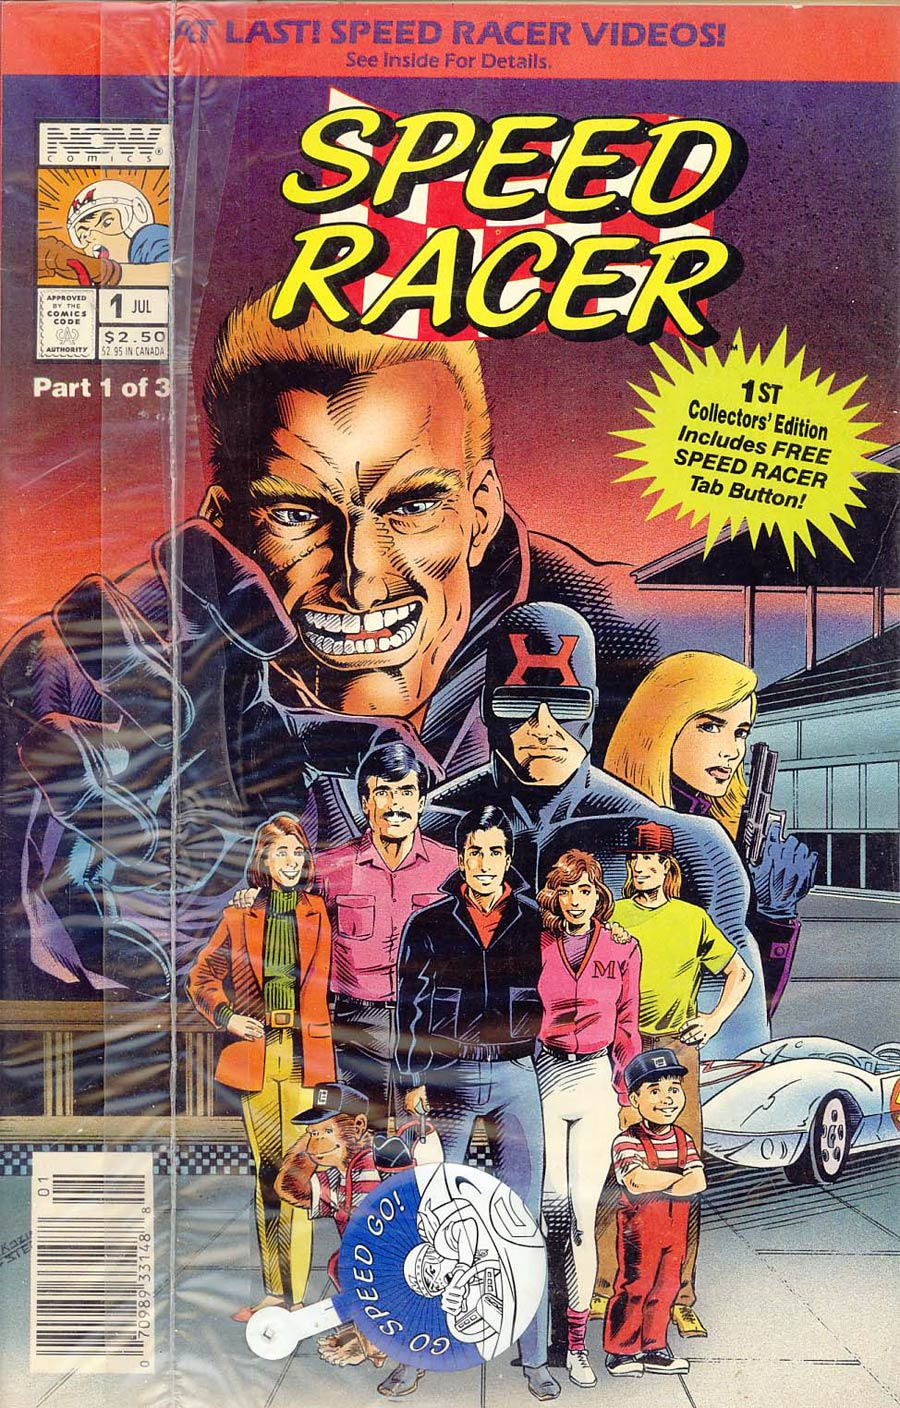 Speed Racer Vol 2 #1 Cover B With Polybag